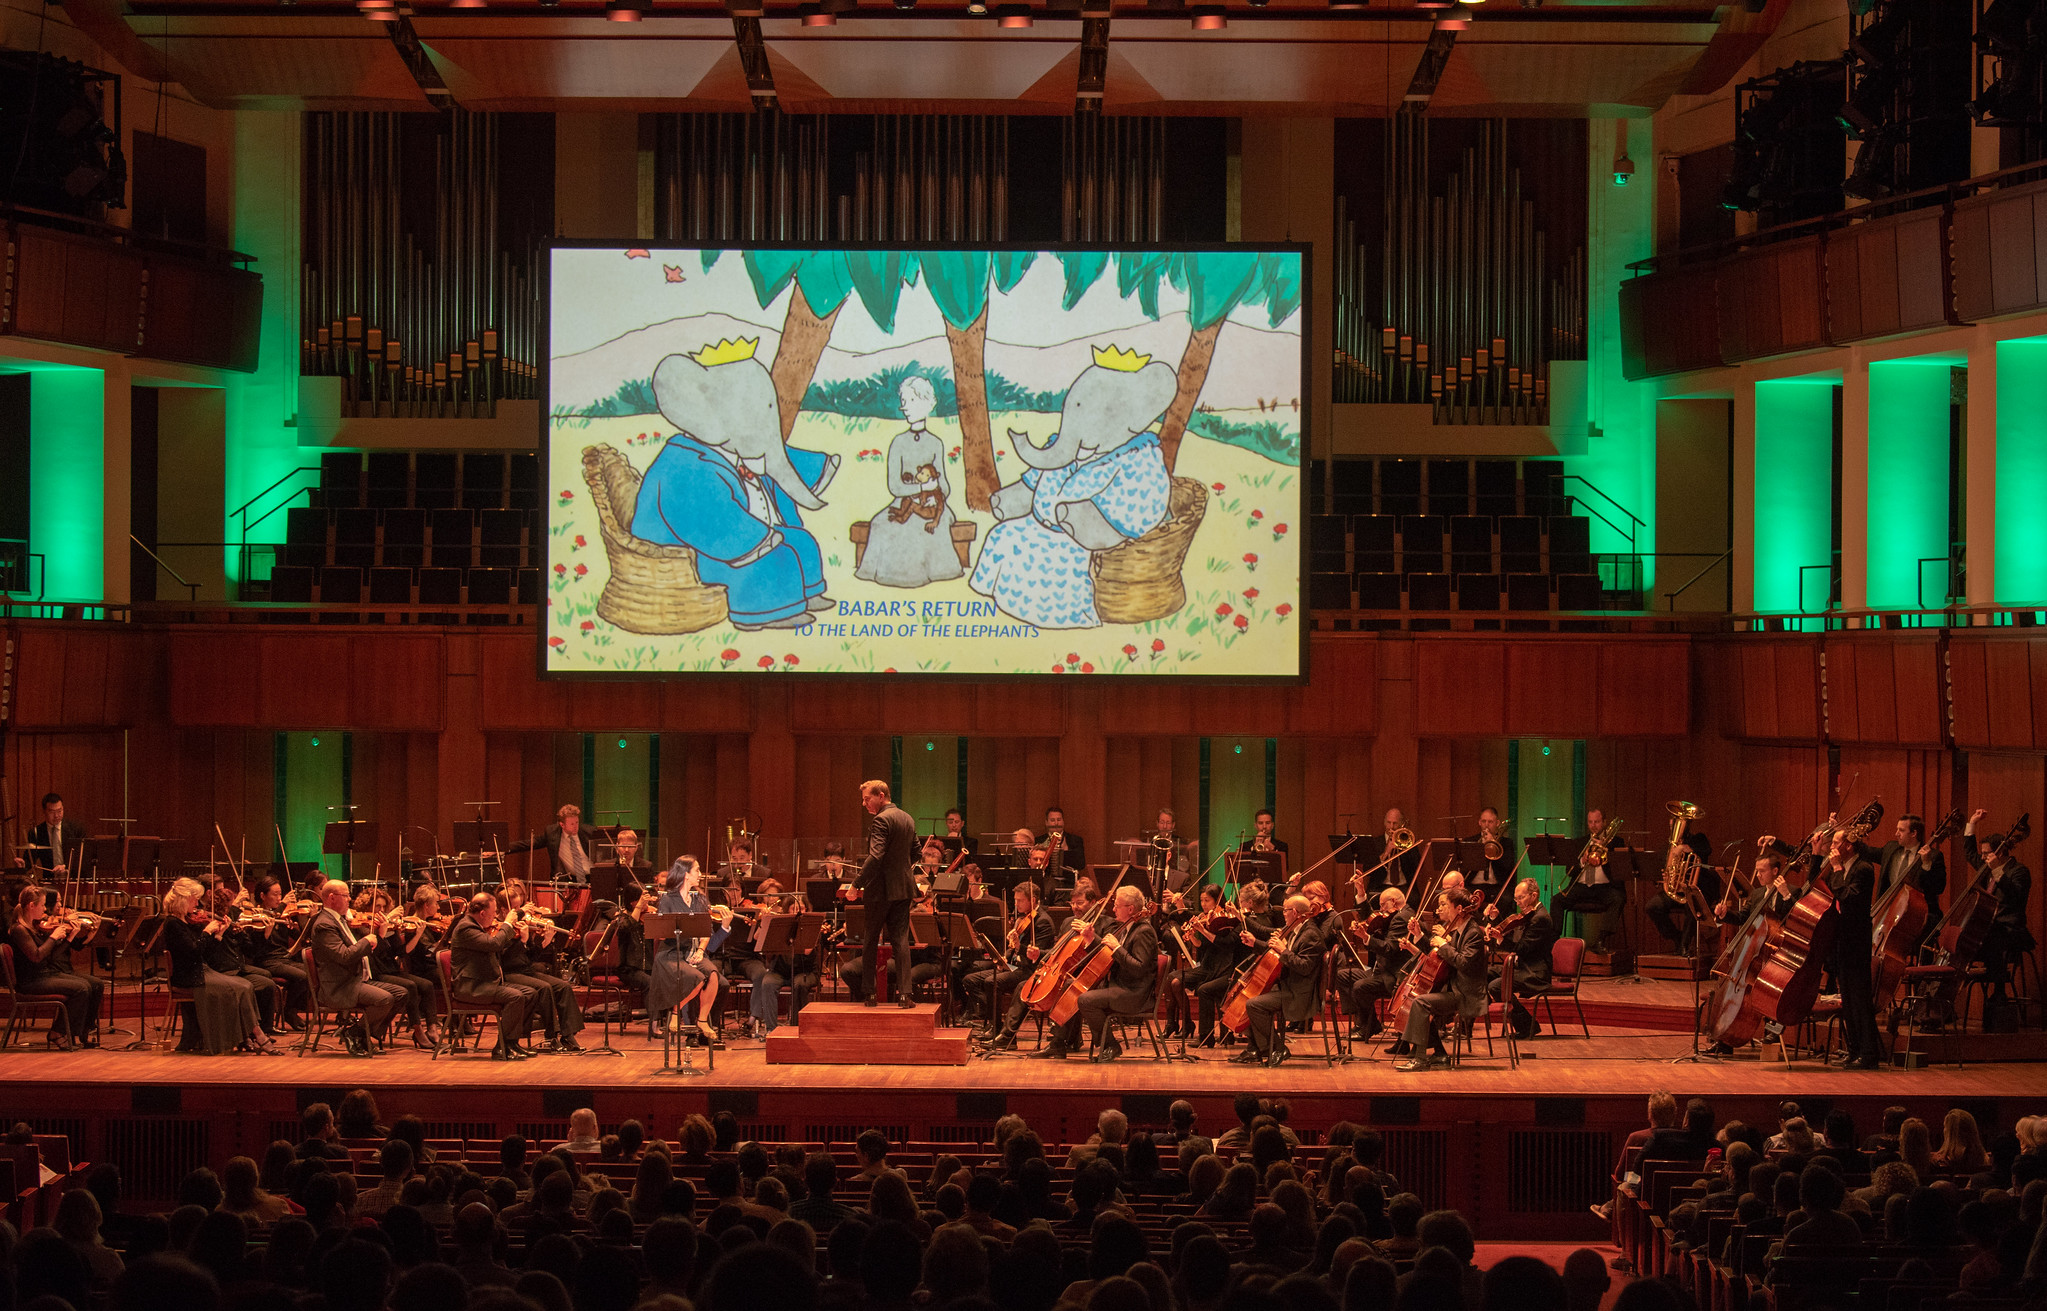 First U.S. performance,   Babar's Return to the Land of the Elephants   National Symphony Orchestra, Steven Reineke, conductor, Regina Aquino, narrator, John F Kennedy Center for the Arts, Washington, D.C., April 7, 2019  Photo: Erica Bruce for Mostel.com (full size, hi-res photo available). Multimedia image: original Jean de Brunhoff watercolor, Kendra & Allan Daniel Collection. Used with permissions